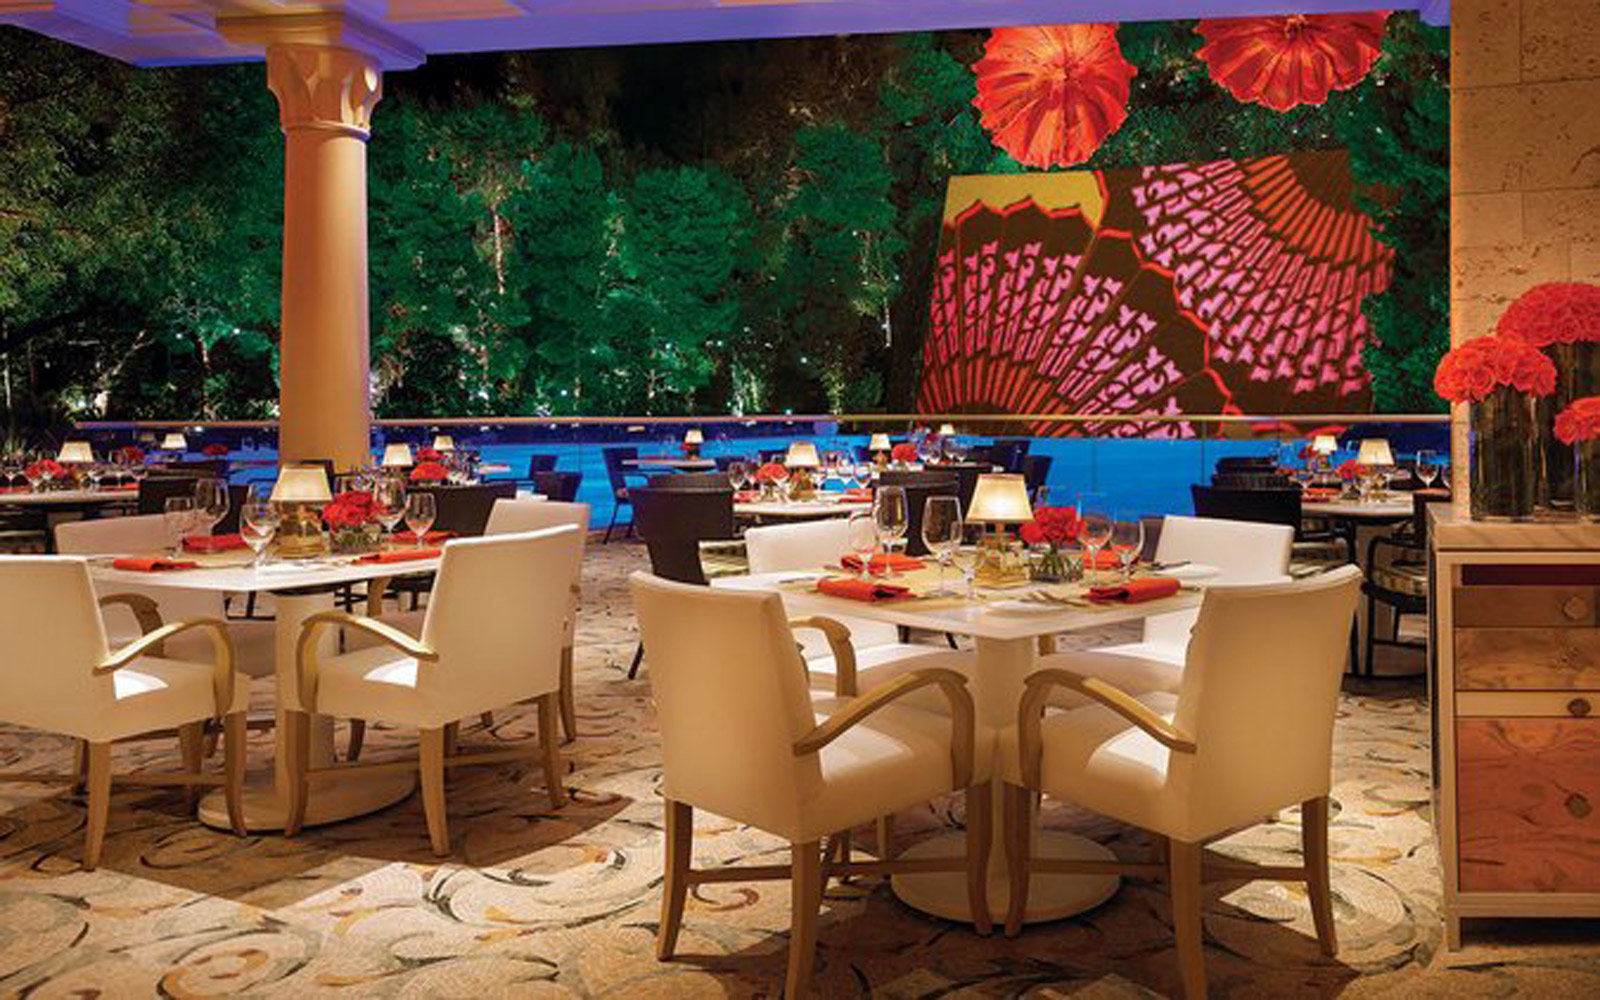 Nevada: Lakeside Restaurant at the Wynn Hotel